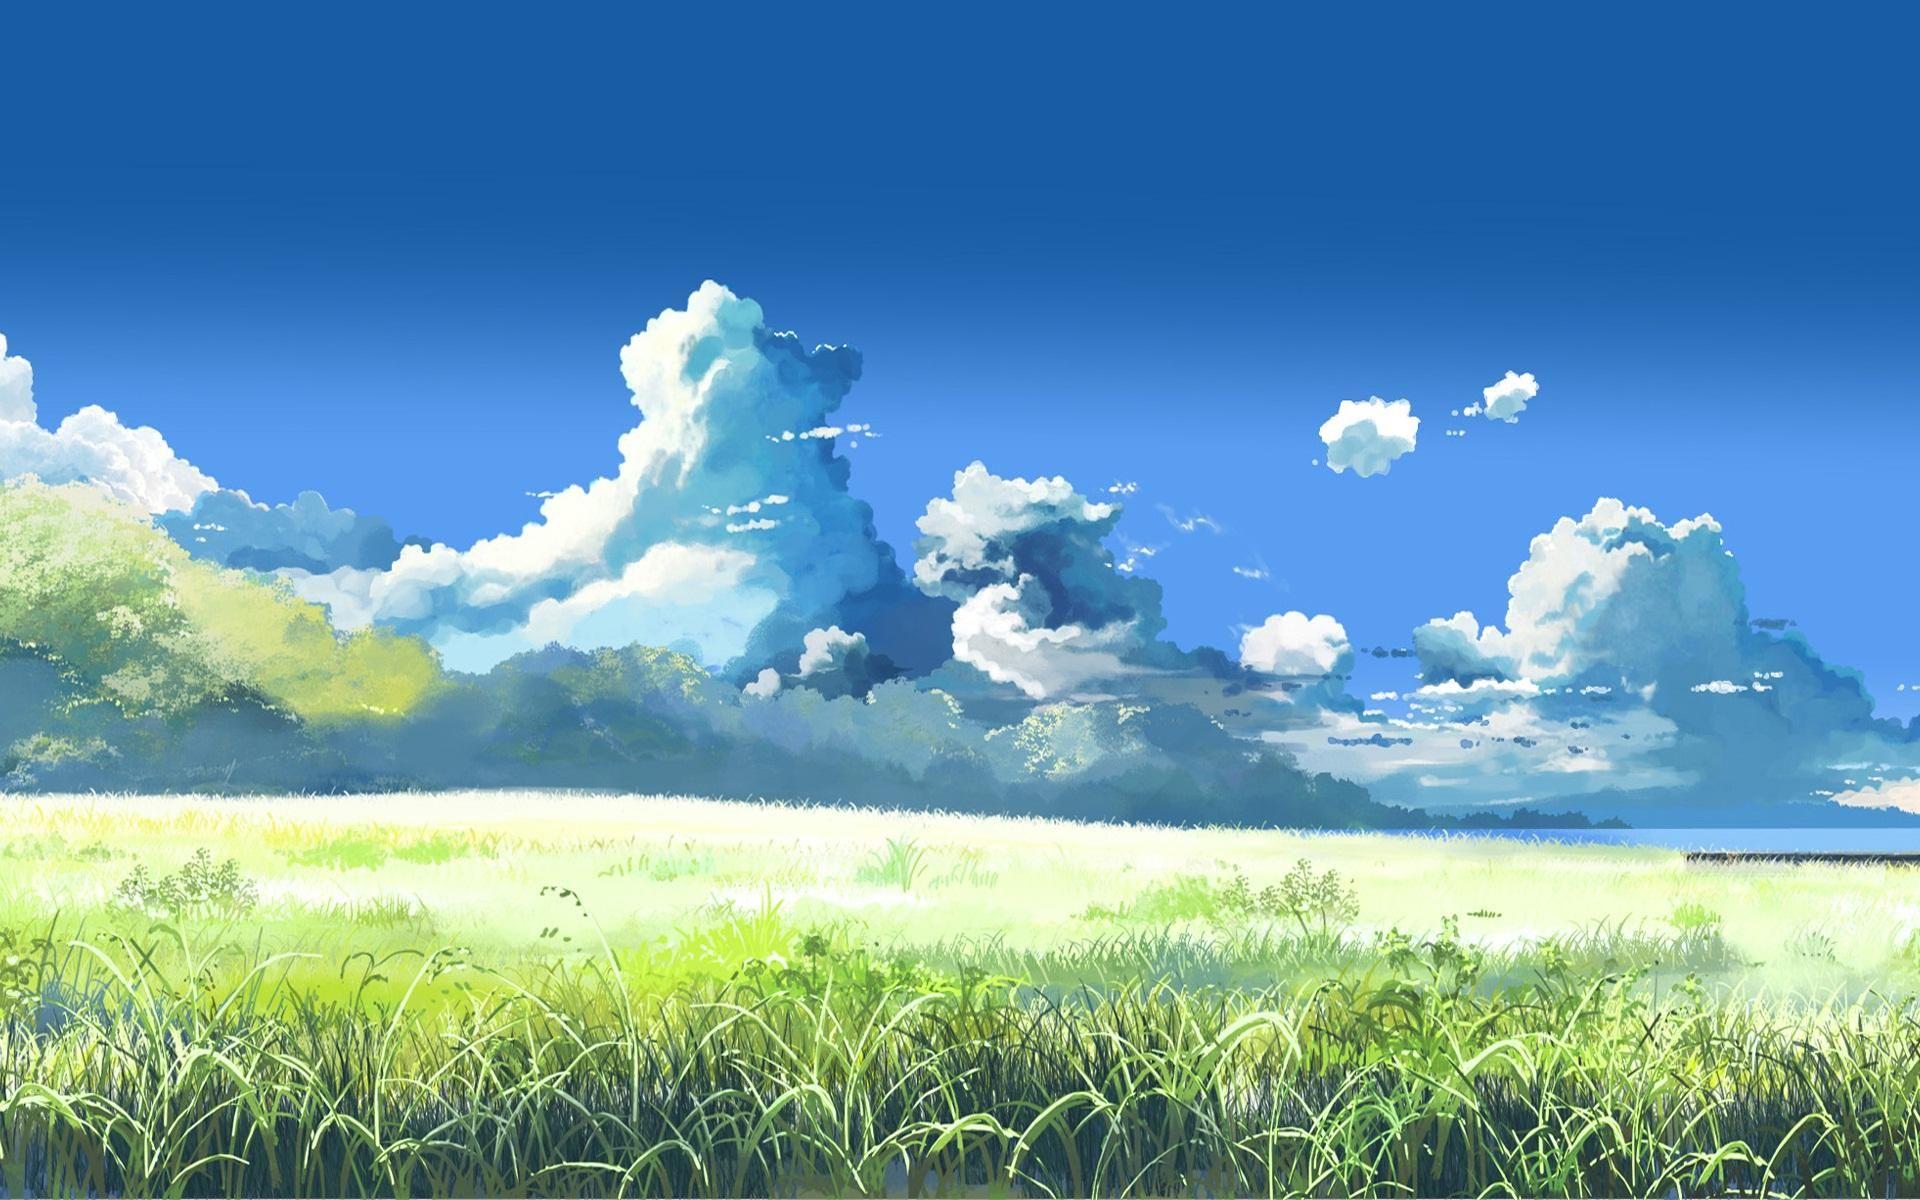 Anime landscape 1920x1200. Wallpapers Pinterest